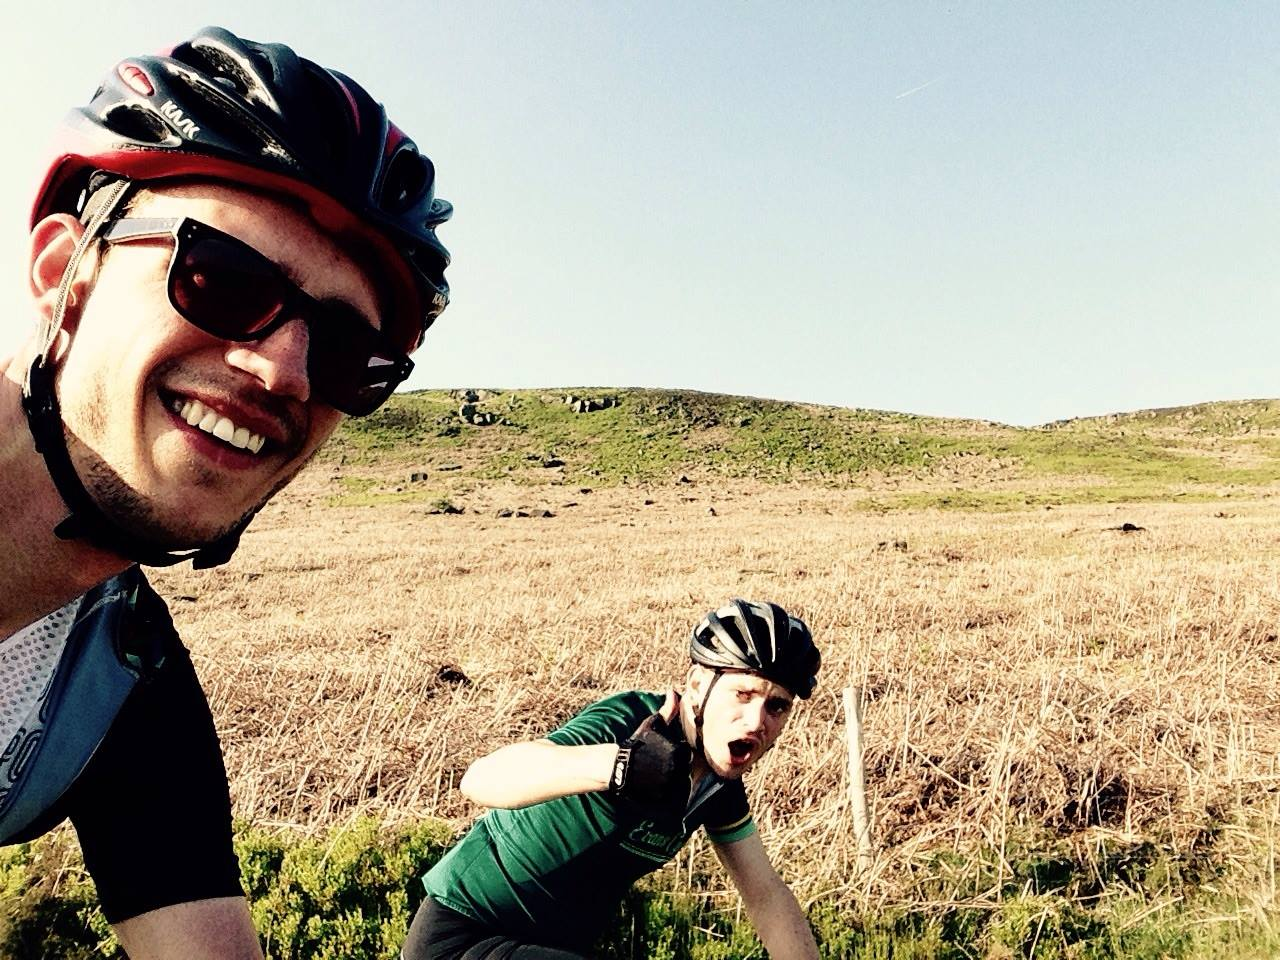 Myself and James heading up New Road to Stanage Edge. Probably talking about Miles or Django.